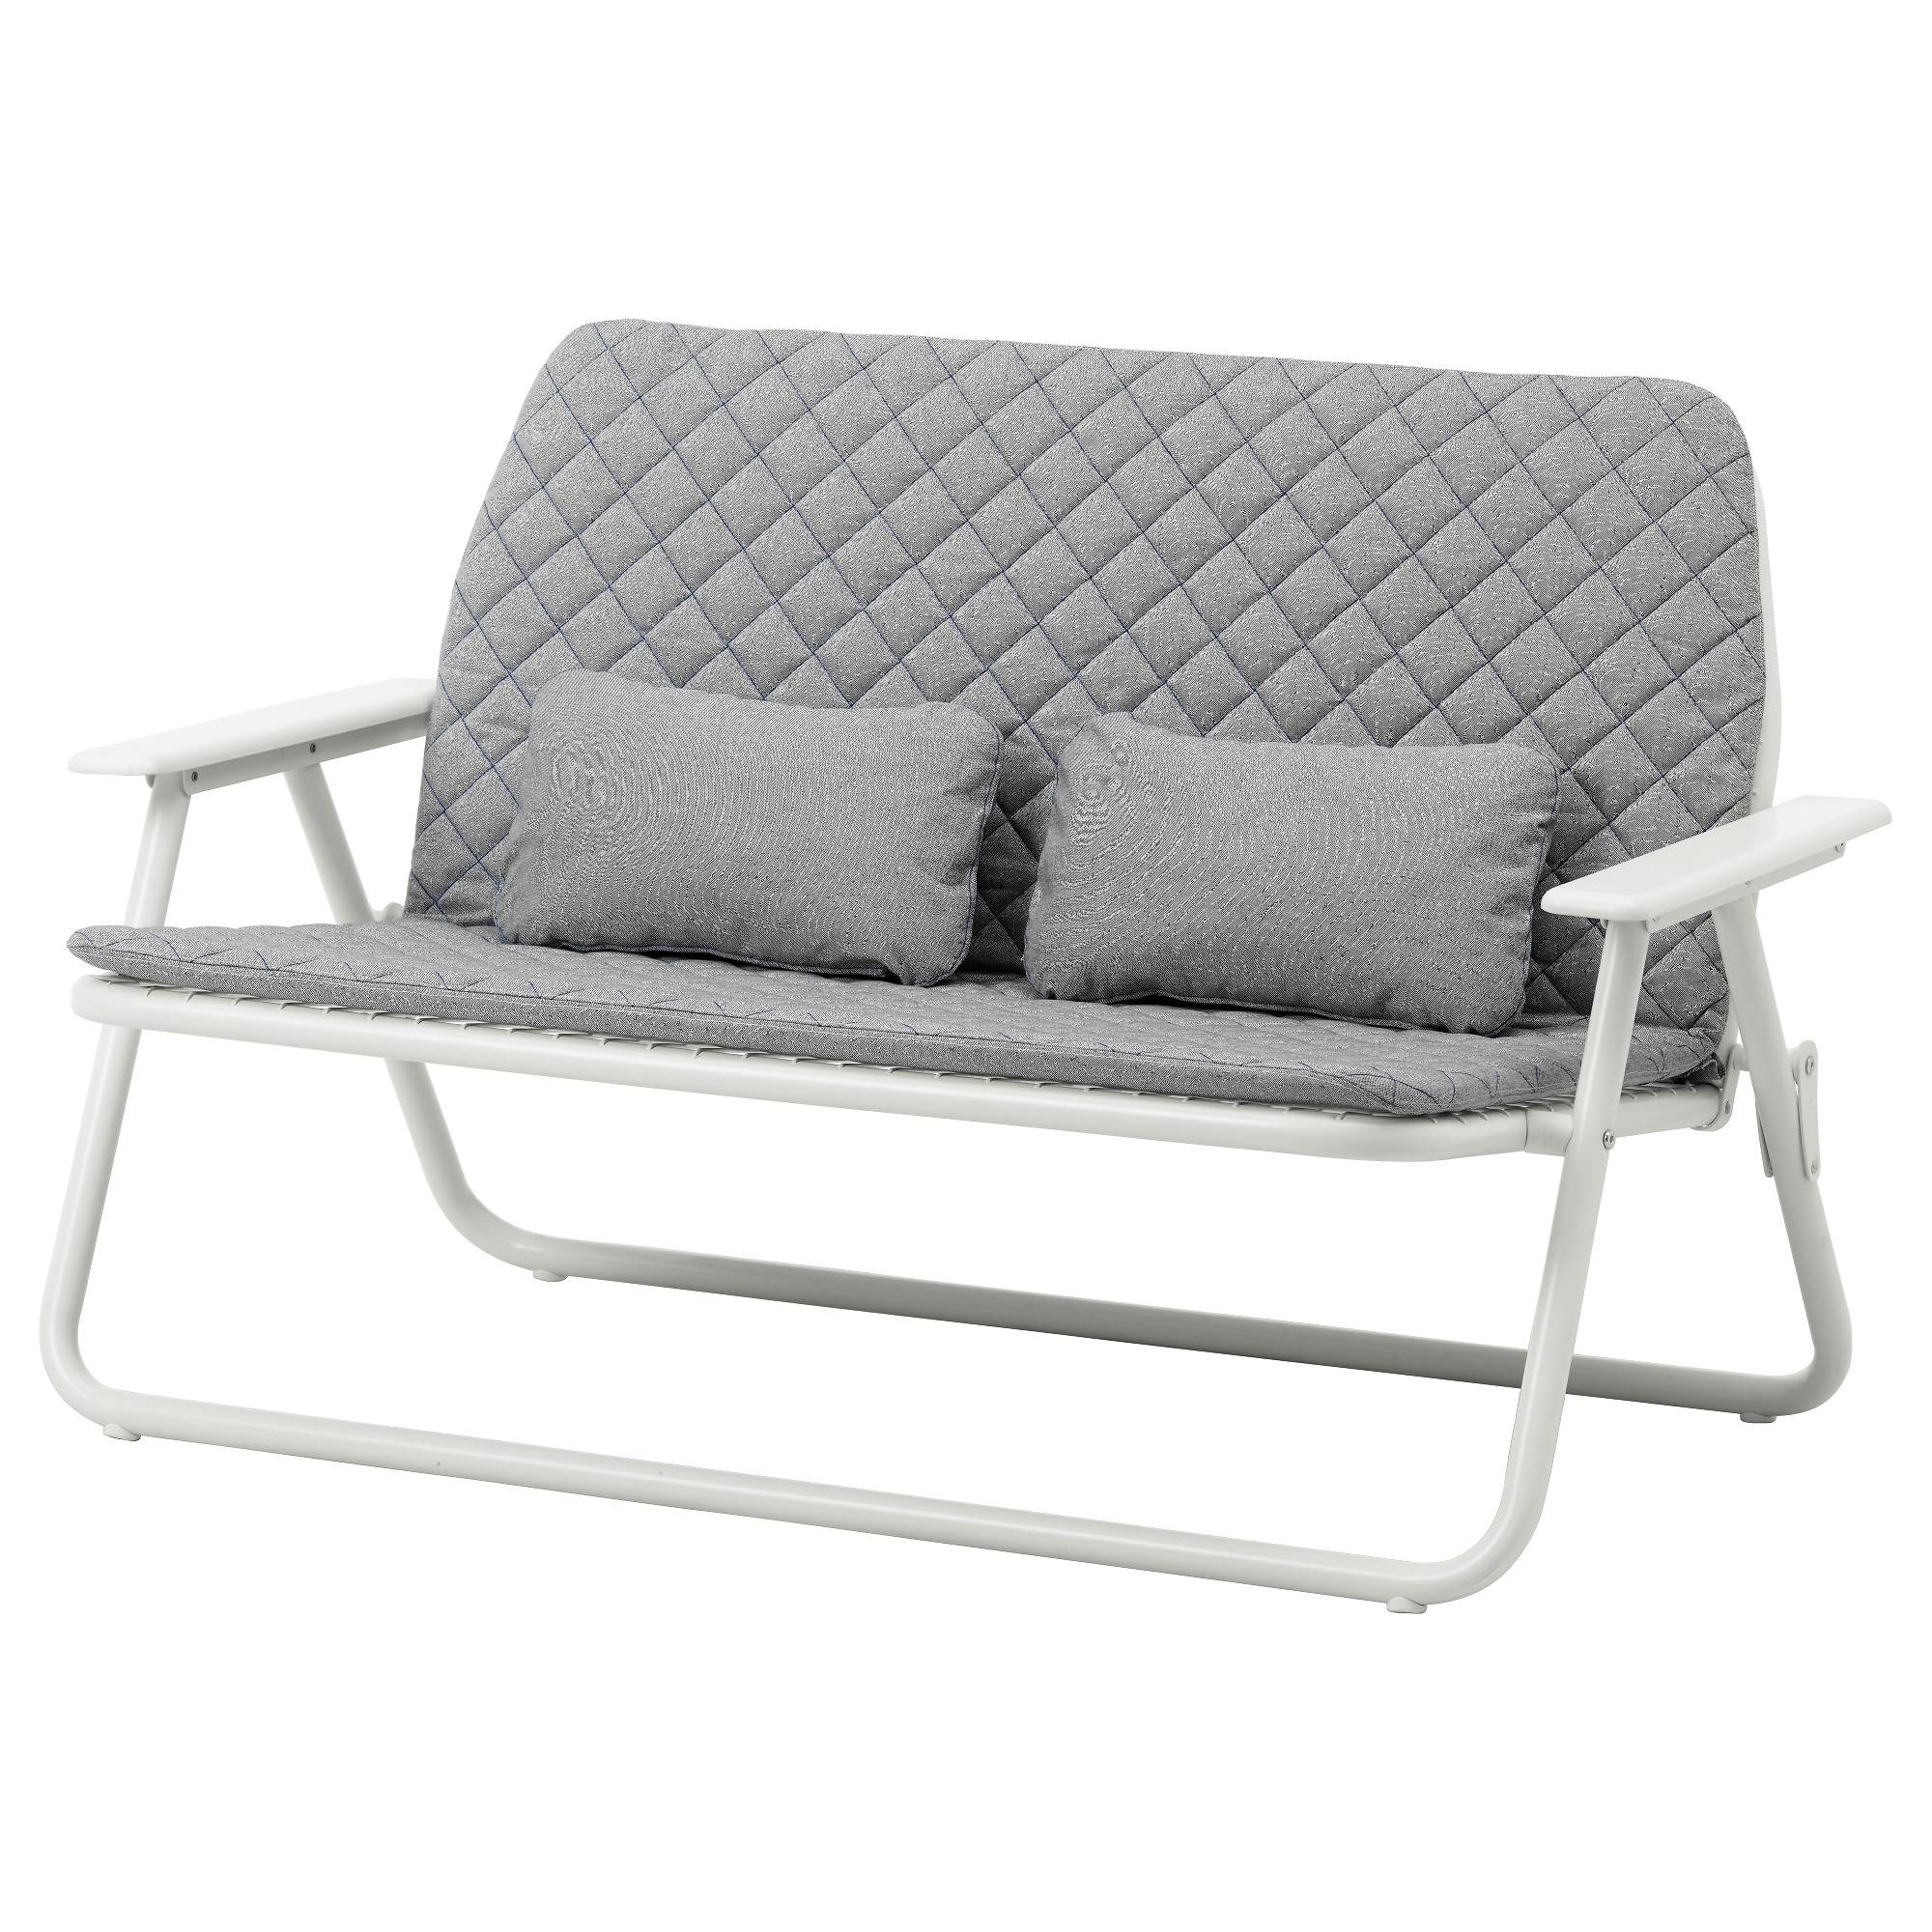 Sofas Center : Ikea Ps Seat Sofa Folding 0496495 Pe628760 S5 Chair within Folding Sofa Chairs (Image 25 of 30)